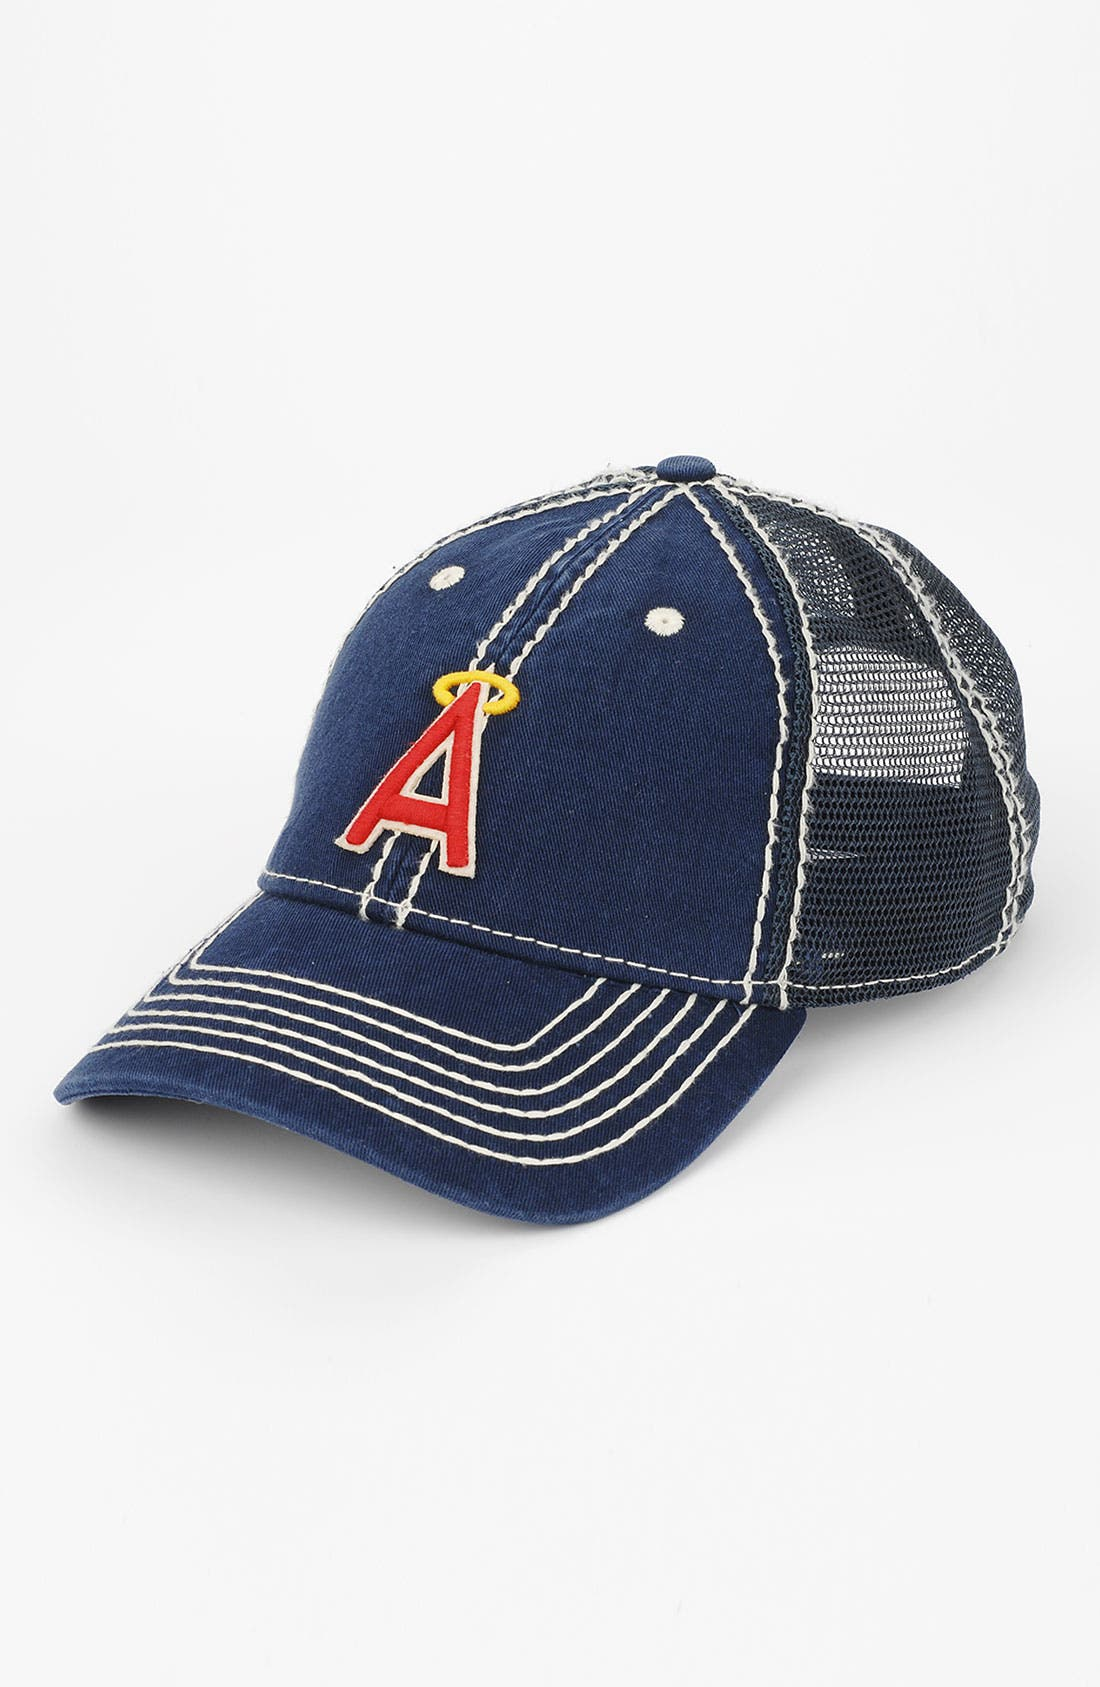 Alternate Image 1 Selected - American Needle 'Angels' Mesh Back Baseball Cap